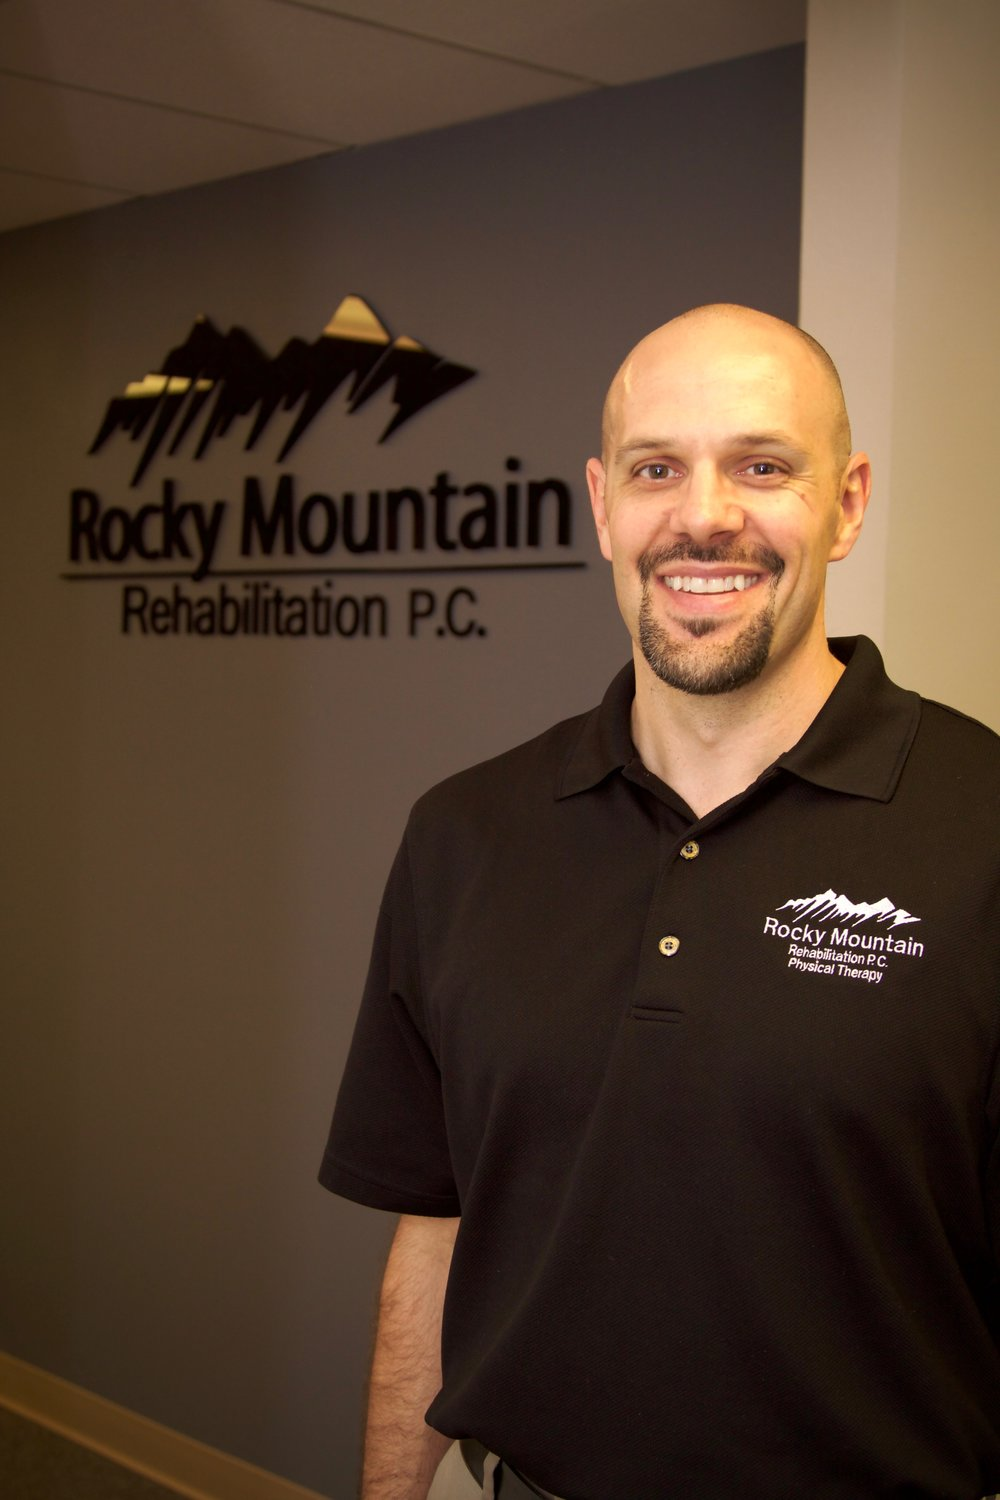 Jeremy Snyder DPT, OCS, CSCS, FMC, CCI - Doctor of Physical Therapy, Orthopedic Certified Specialist, Certified Strength and Conditioning Specialist. Functional Movement Screen Certified, Certified Clinical Instructor. Jeremy is active in the Colorado American Physical Therapy Association, serving on the nominating committee and is a physical therapy consultant for Colorado College Athletics. Jeremy is also a Level 1 and Level 2 Instructor for Kinetacore, teaching Trigger Point Dry Needling throughout the United States and Canada. Jeremy's interests include treatment of shoulder dysfunction, running injuries, post-surgical rehab, and sports orthopedics.